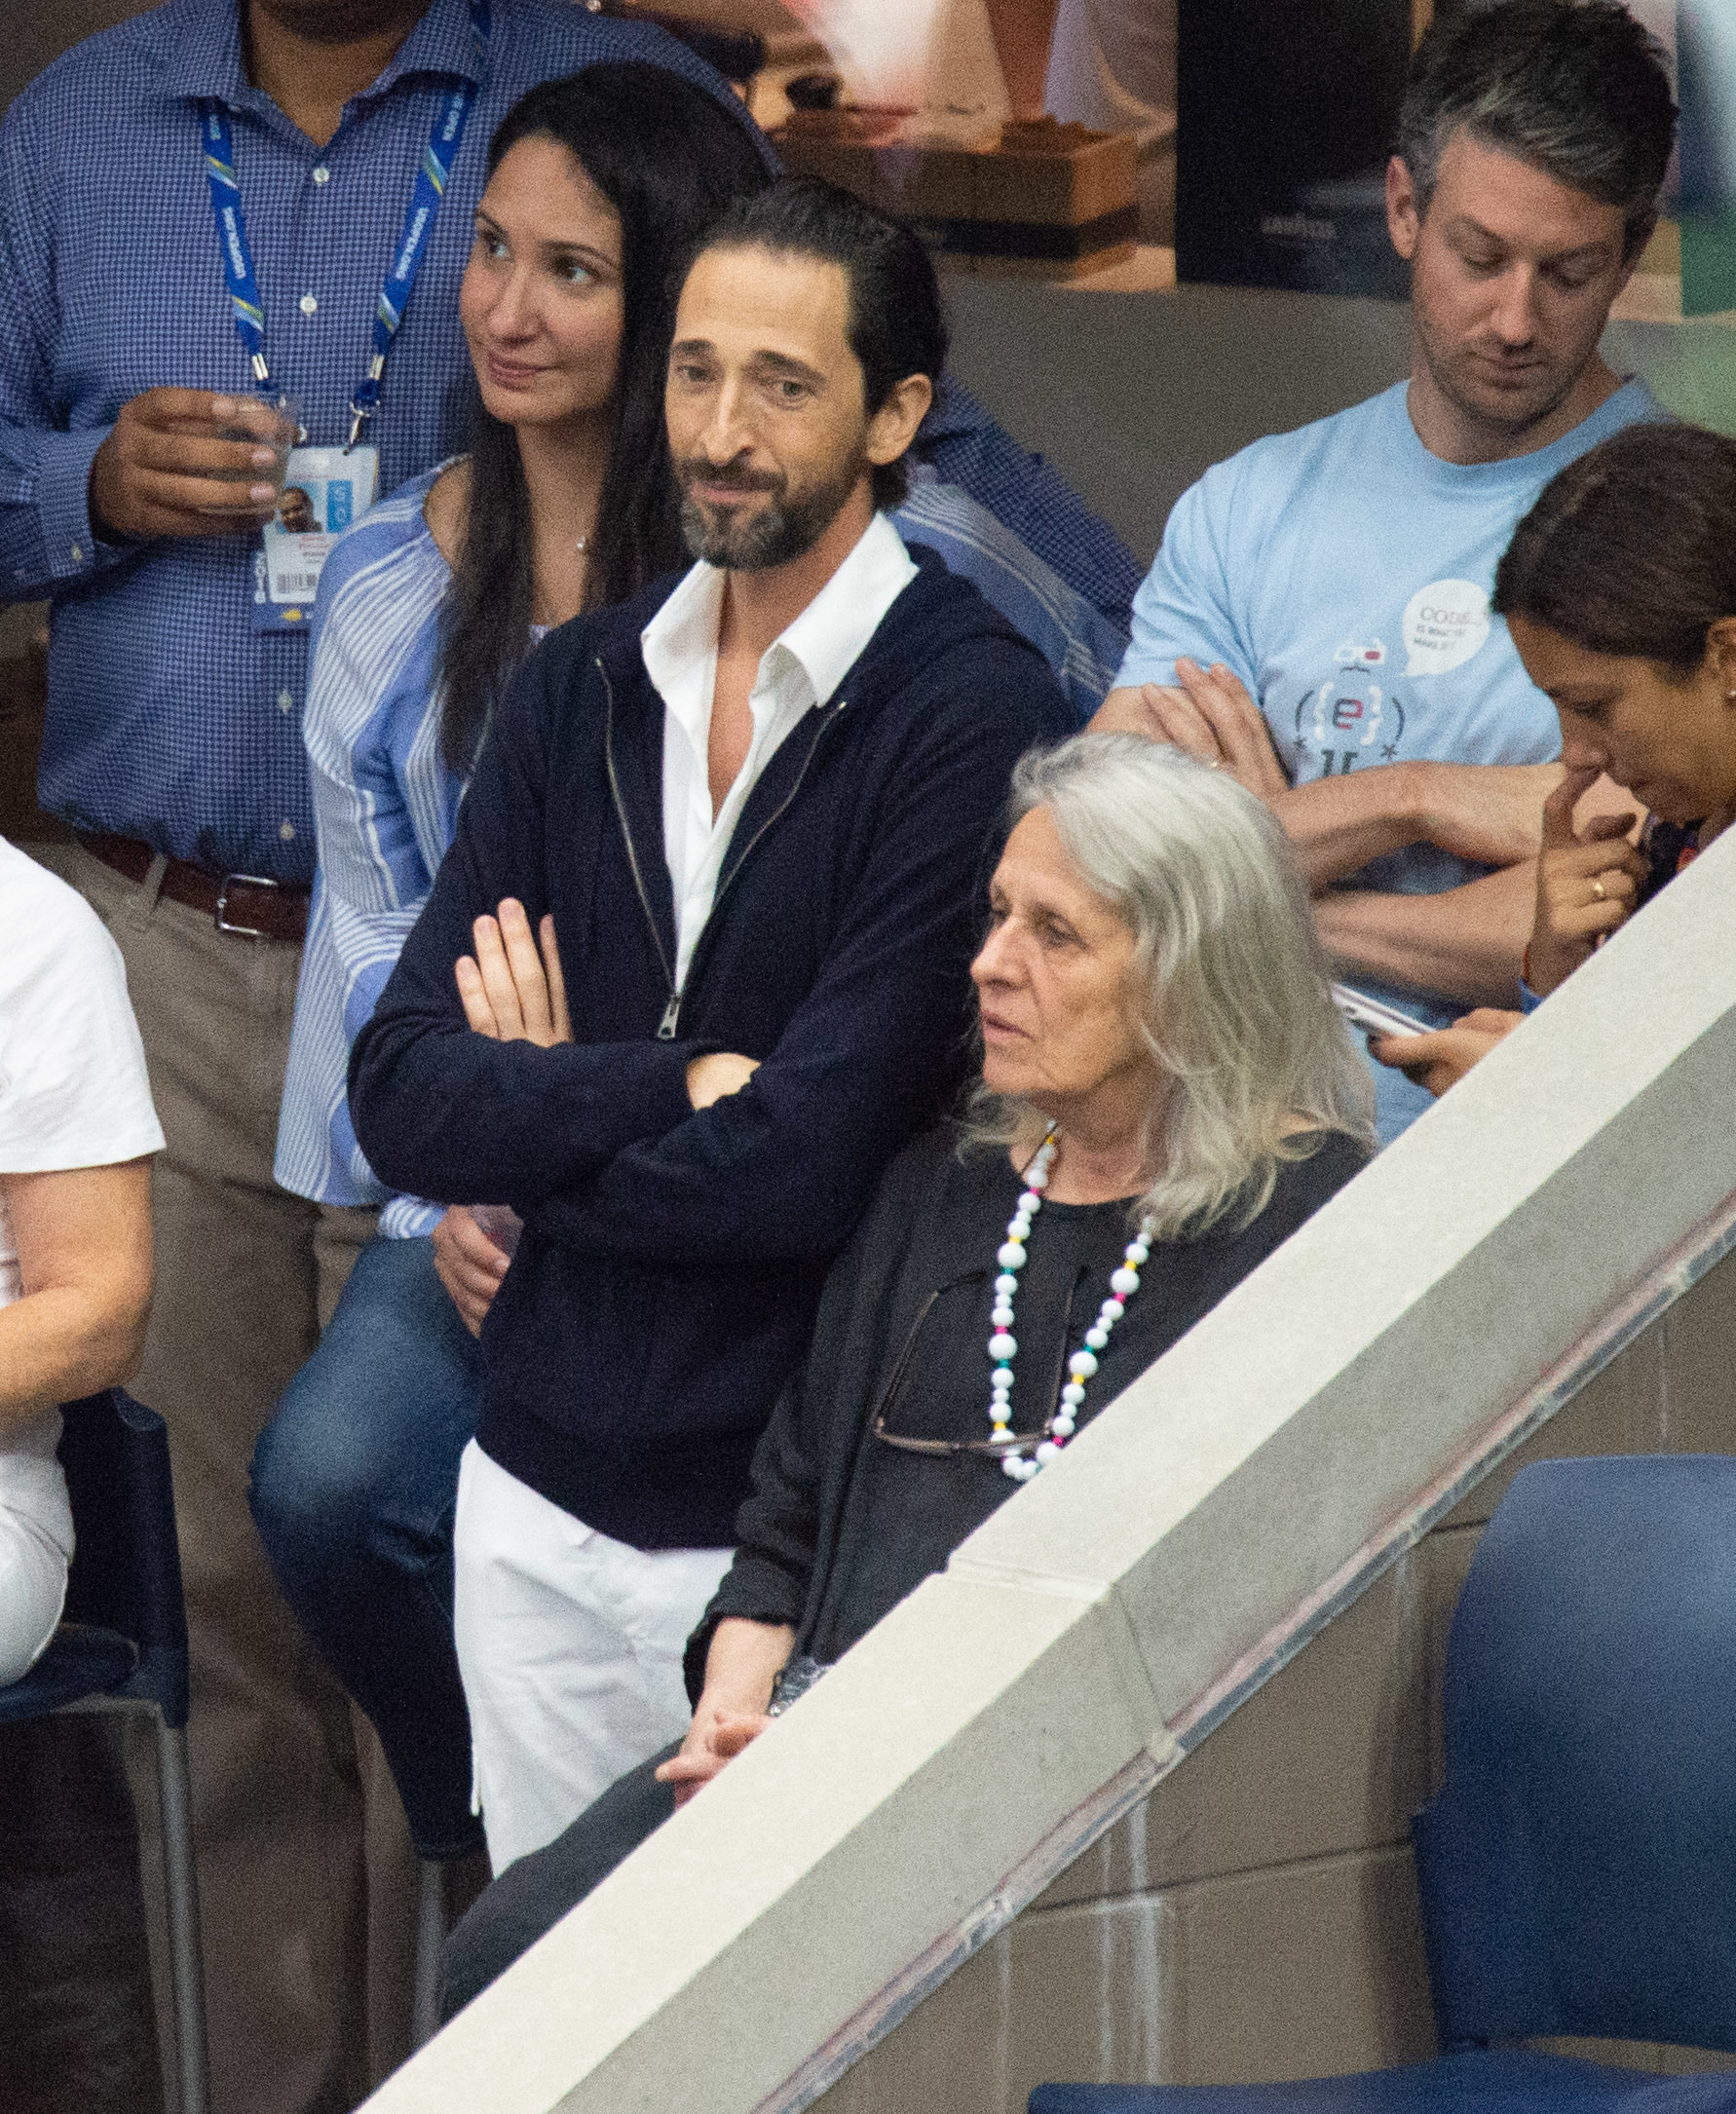 Adrien Brody and mom Sylvia Plachy attend Day 13 of the U.S. Open Tennis Championships at the USTA Tennis Center in Flushing, New York, on Sept. 8, 2018.